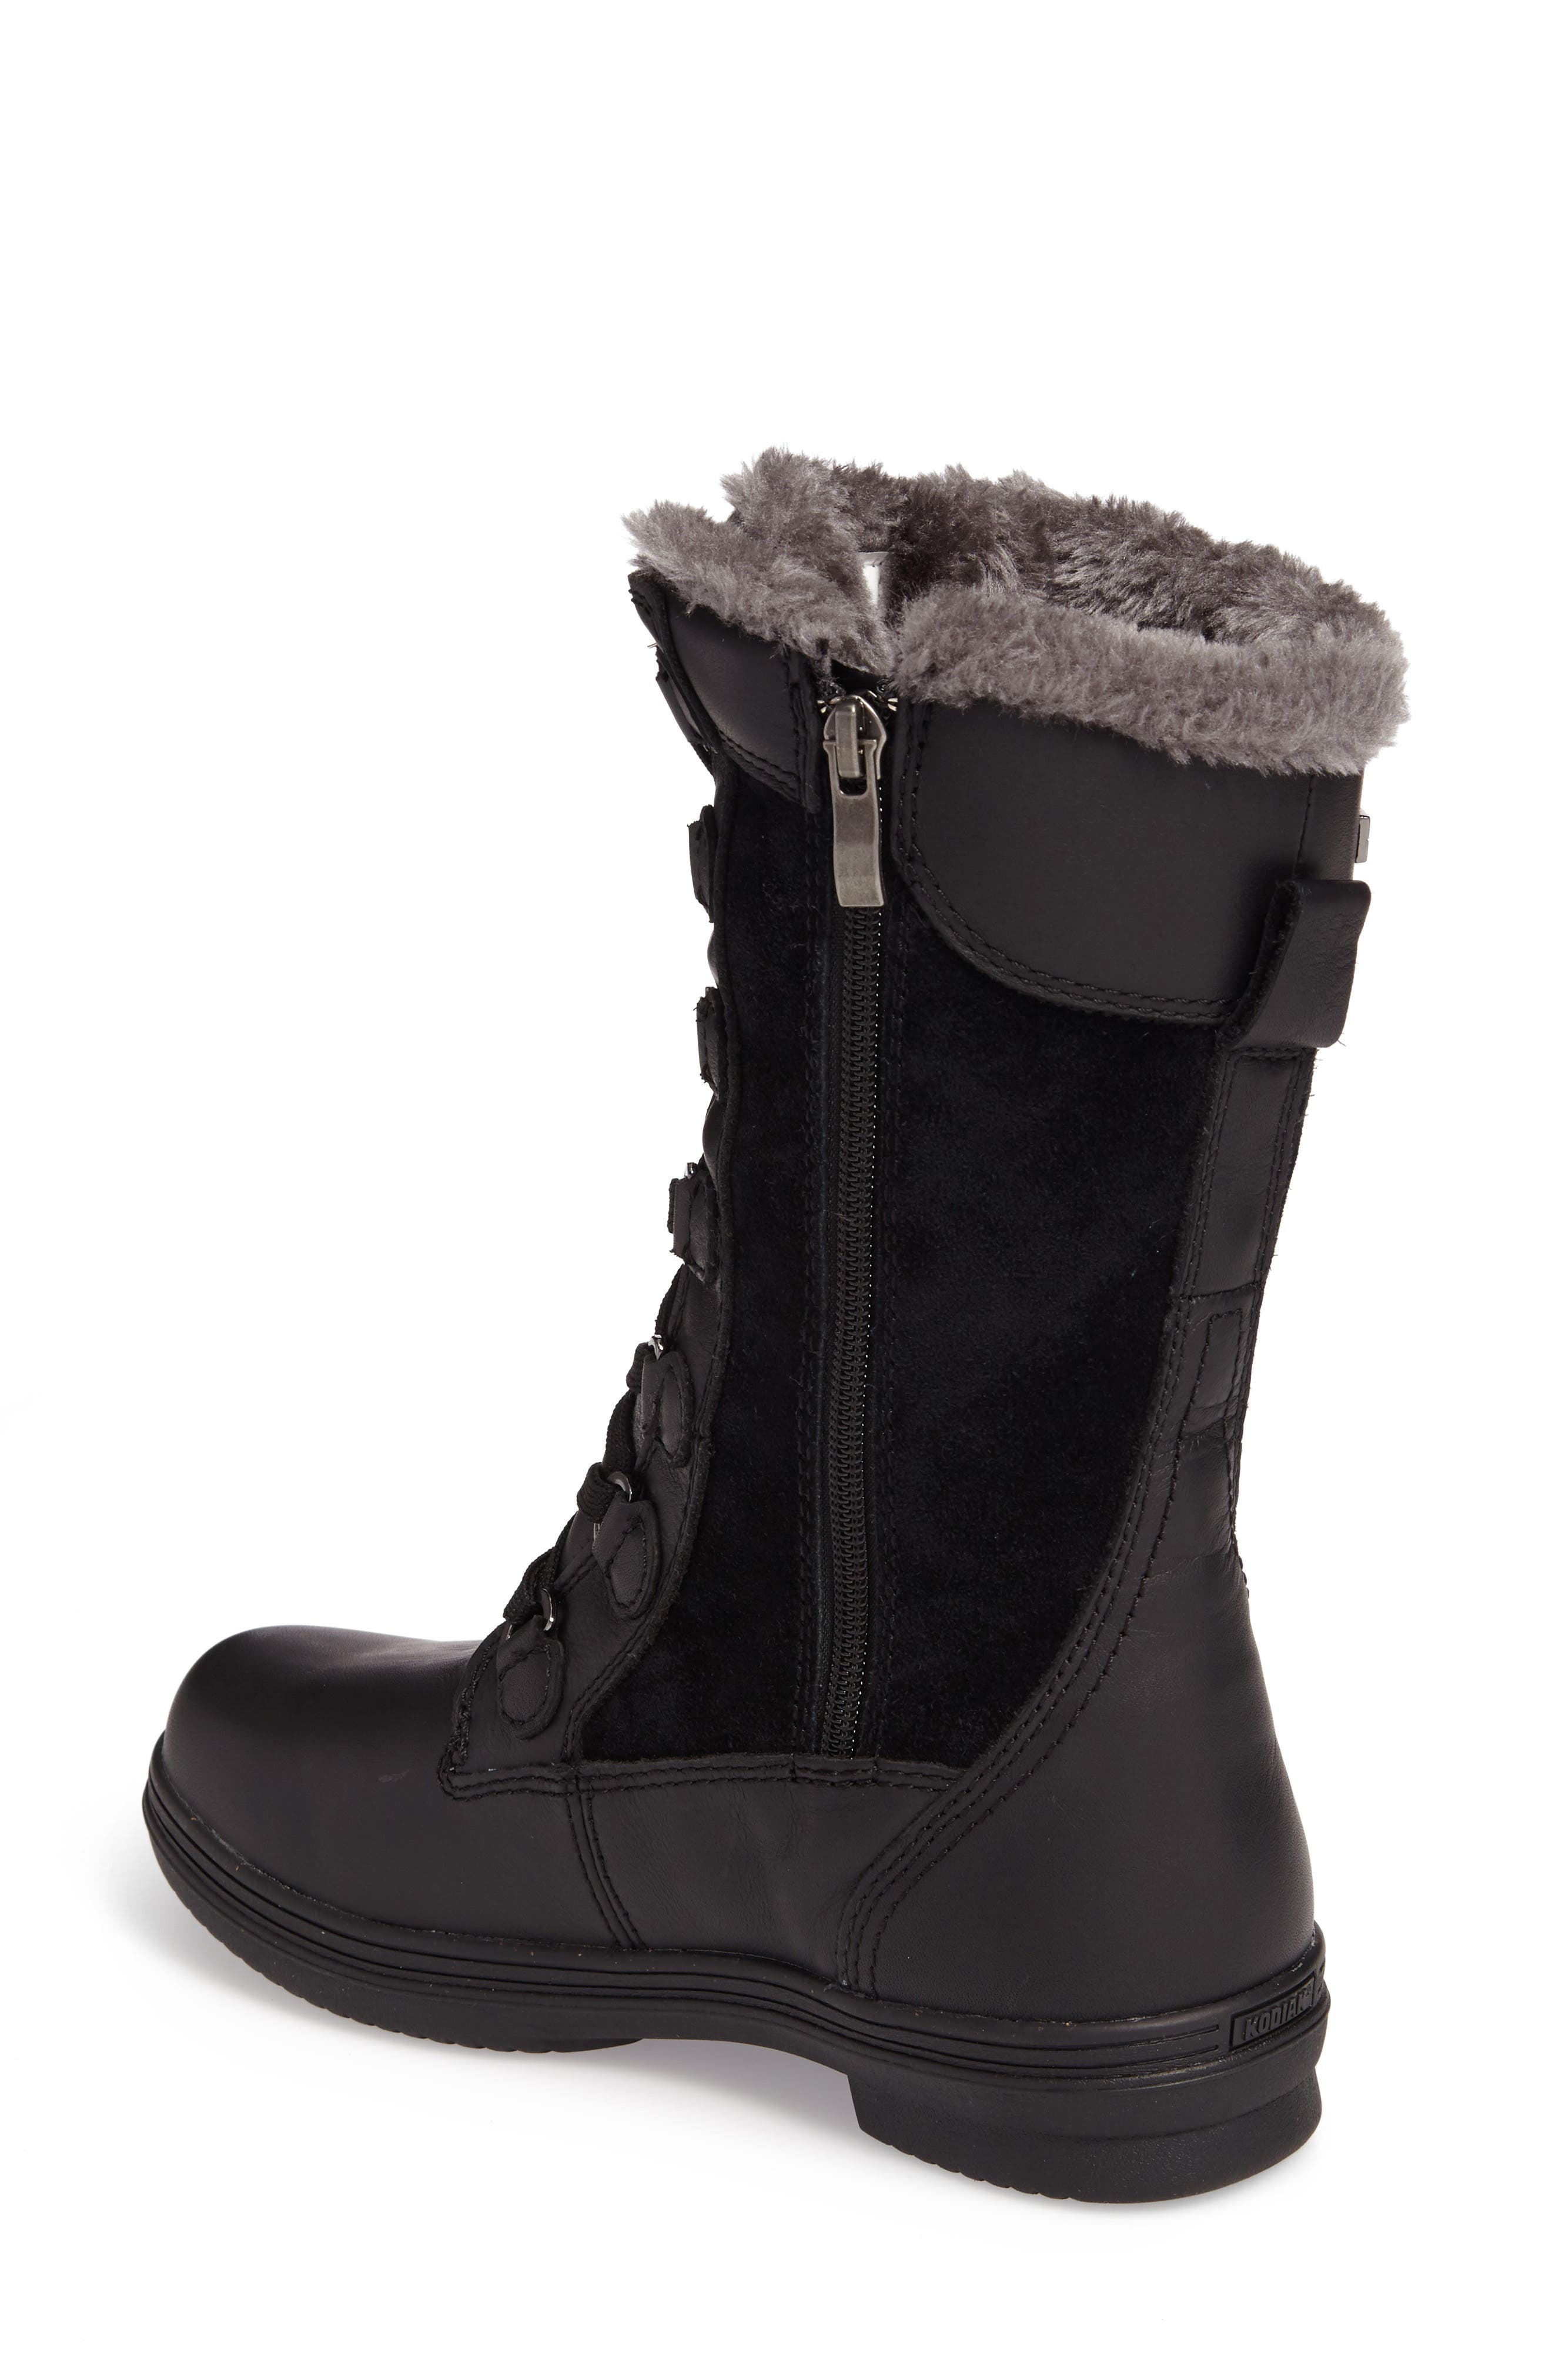 Alternate Image 2  - Kodiak Glata Waterproof Boot (Women)